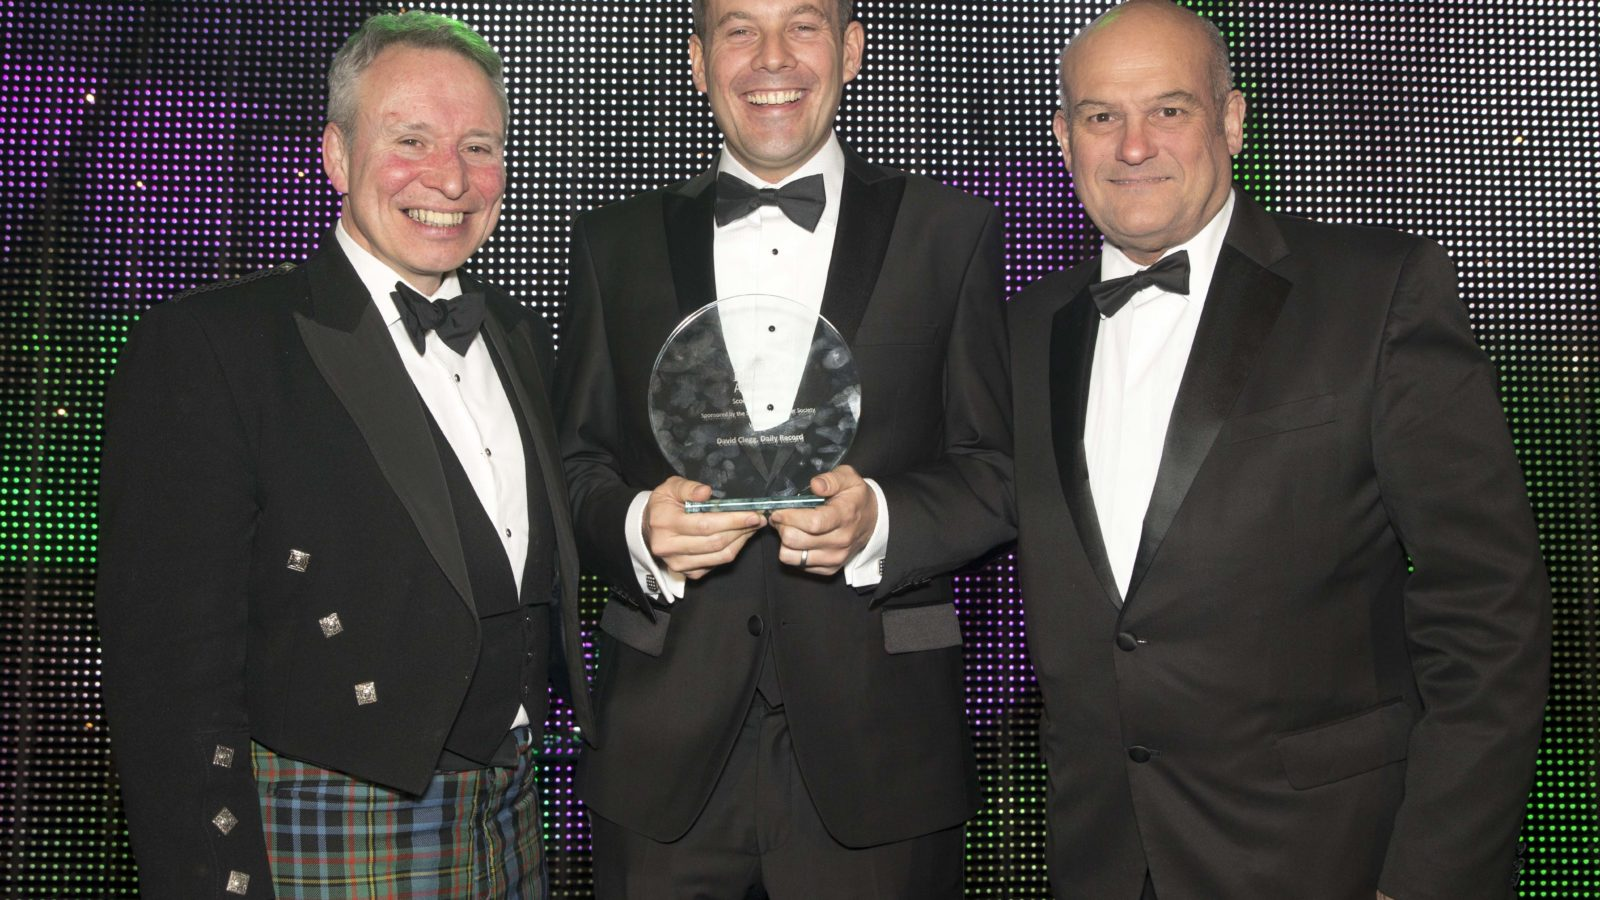 Scoop of the Year Sponsored by the Scottish Newspaper Society - @scotnewssociety Winner David Clegg, Daily Record